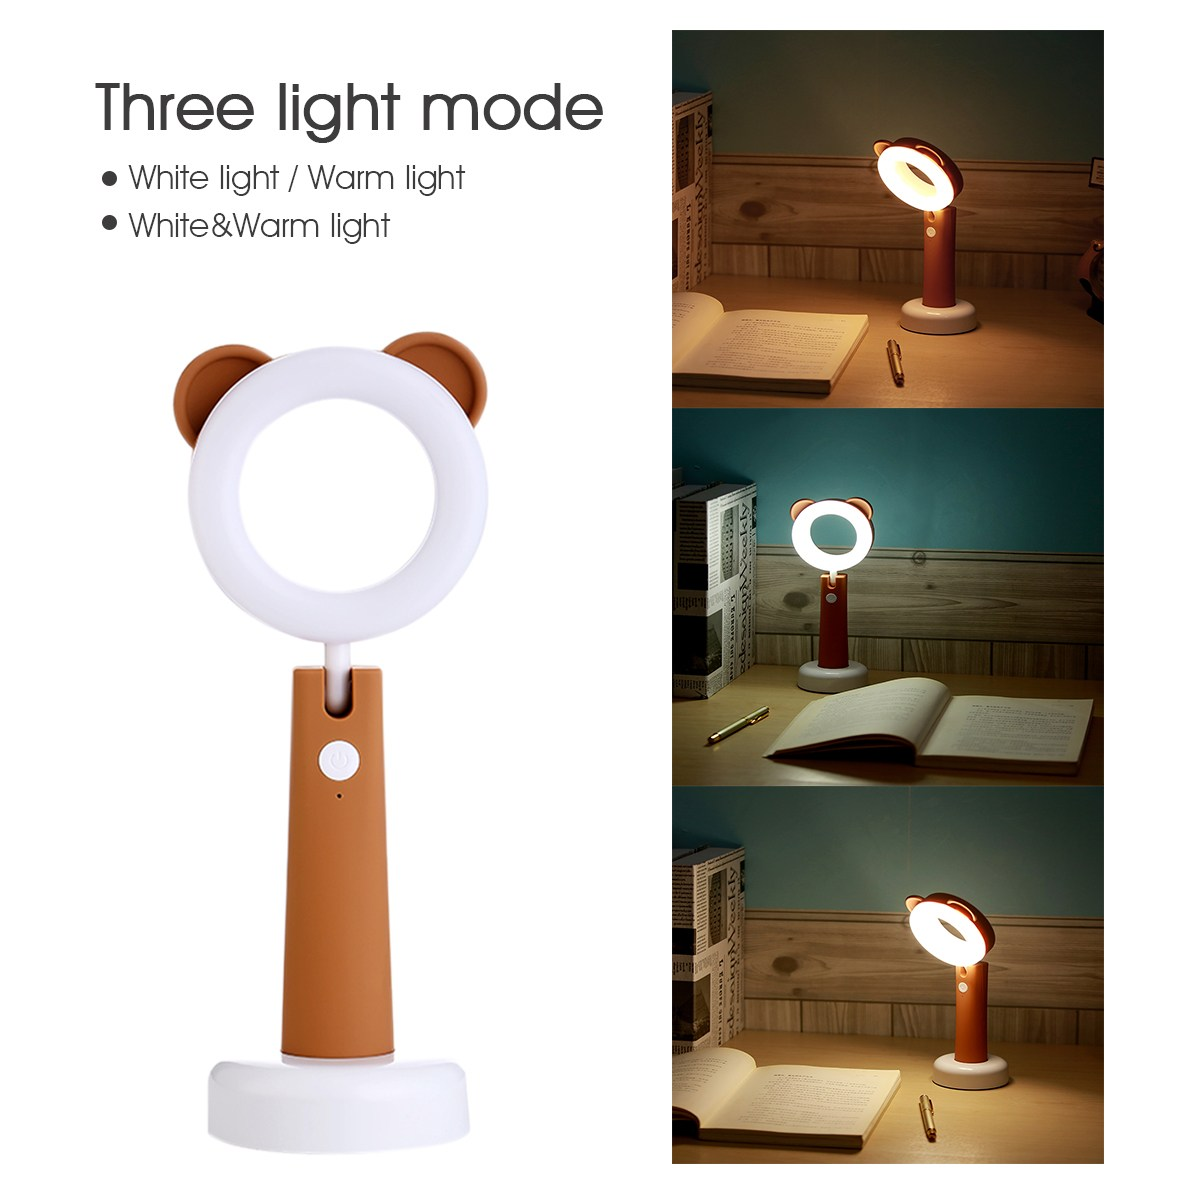 Portable Touch Control Animal Led Night Light Table Desk Lamp Children Kids Baby Sleeping Room USB charging Reading Lighting novelty led night light wireless remote control dimmable night lamp rgb kids children desk table lights usb 5v